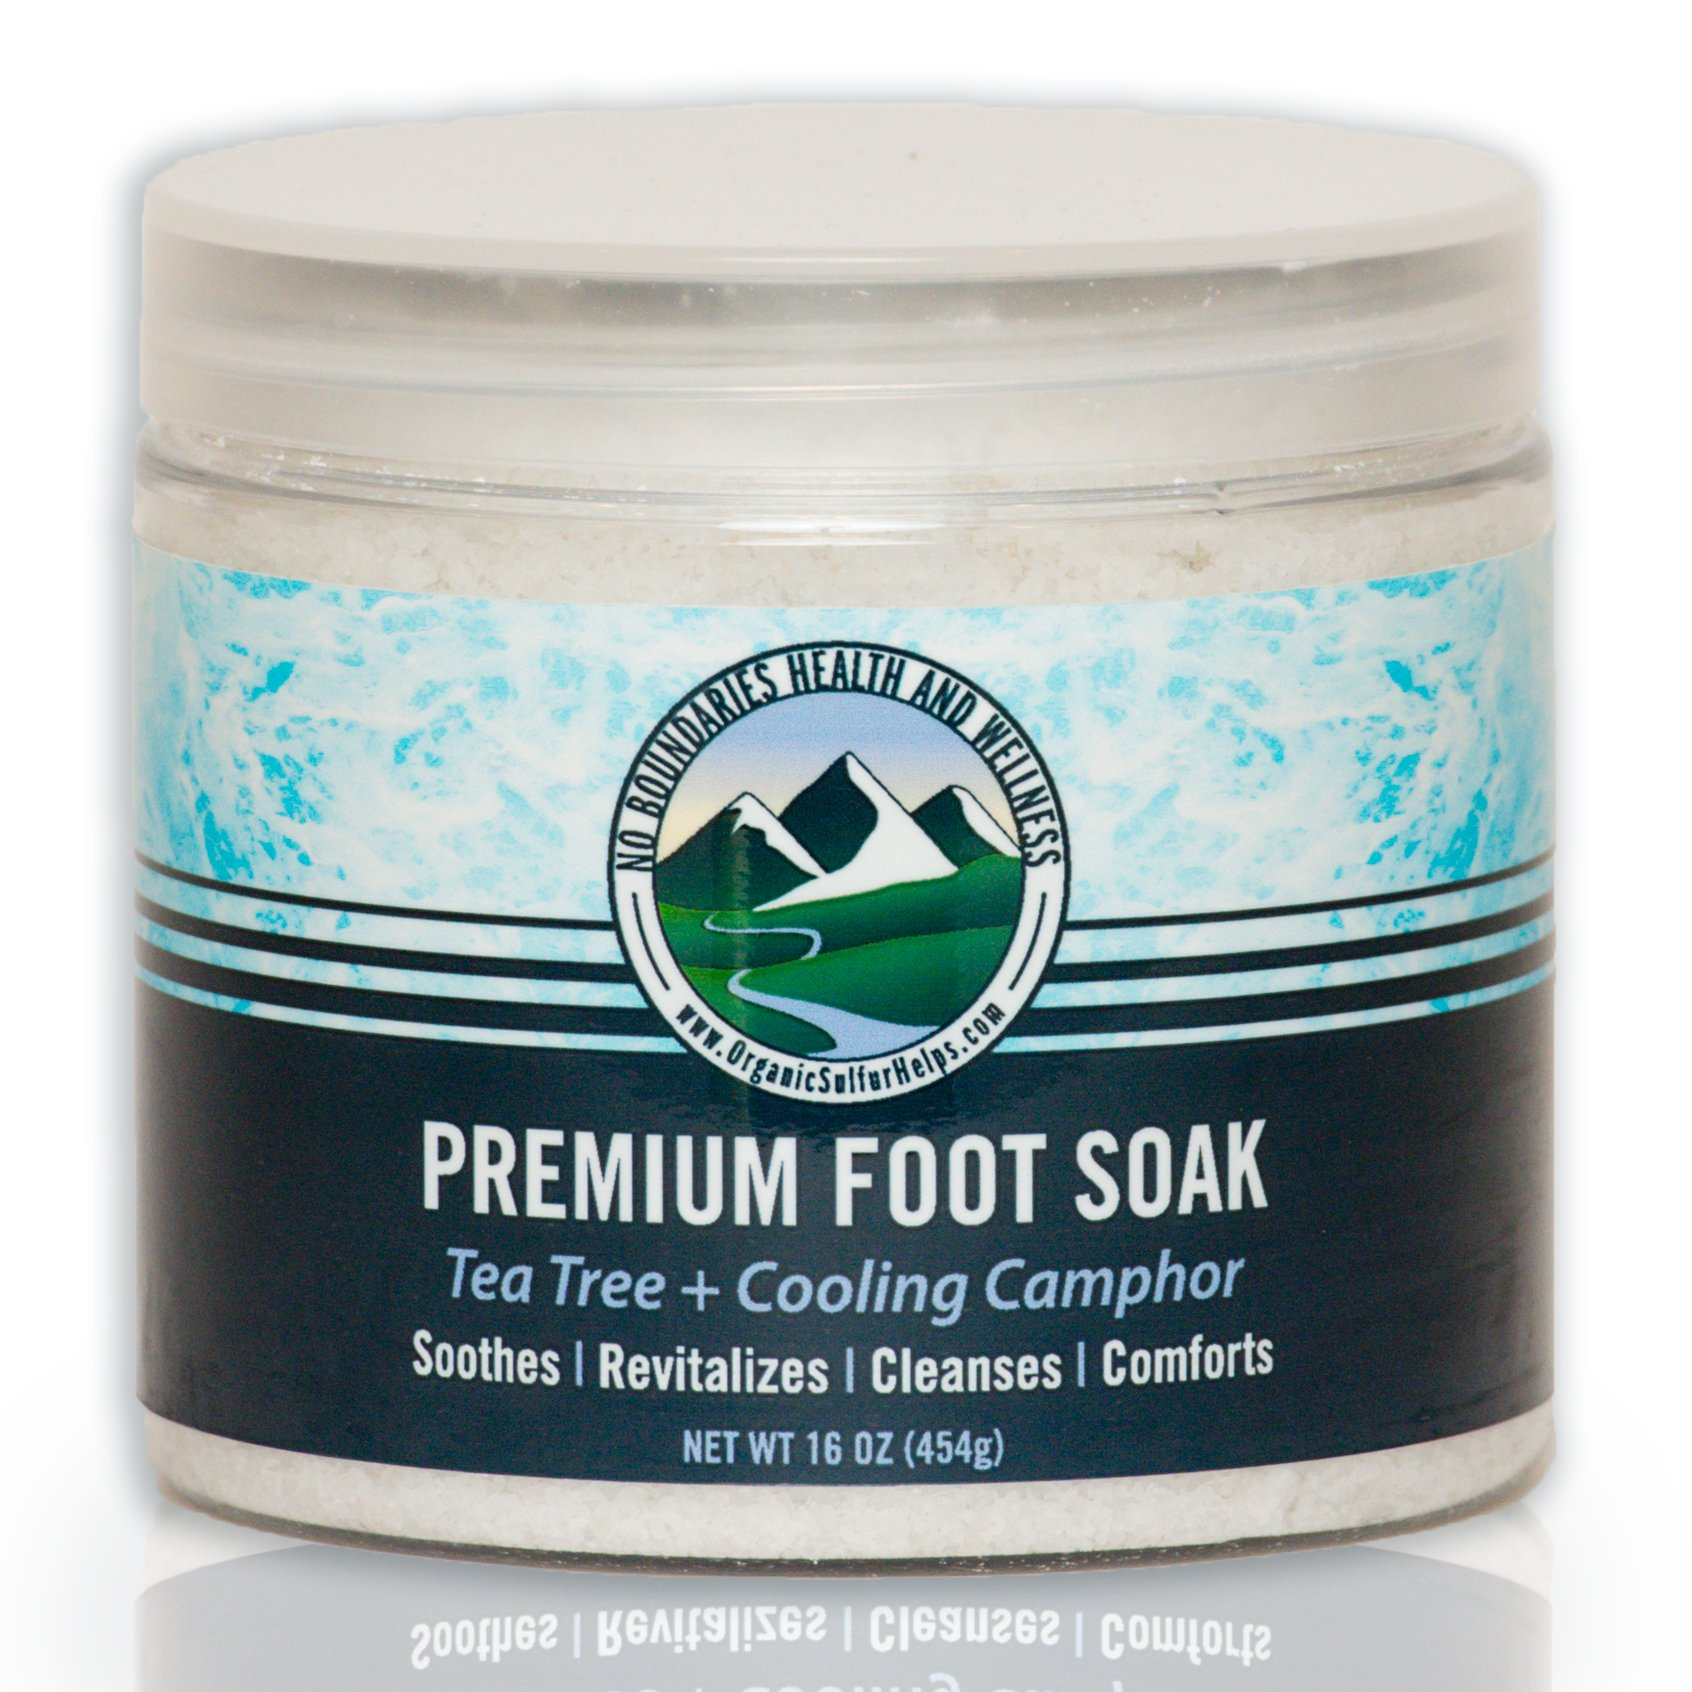 Premium Tea Tree Oil + Cooling Camphor Foot Soak by No Boundaries Health and Wellness – Peppermint, Rosemary, Cajeput Essential Oils, Epsom & Dead Sea Salts, MSM Organic Sulfur – Soothe Feet